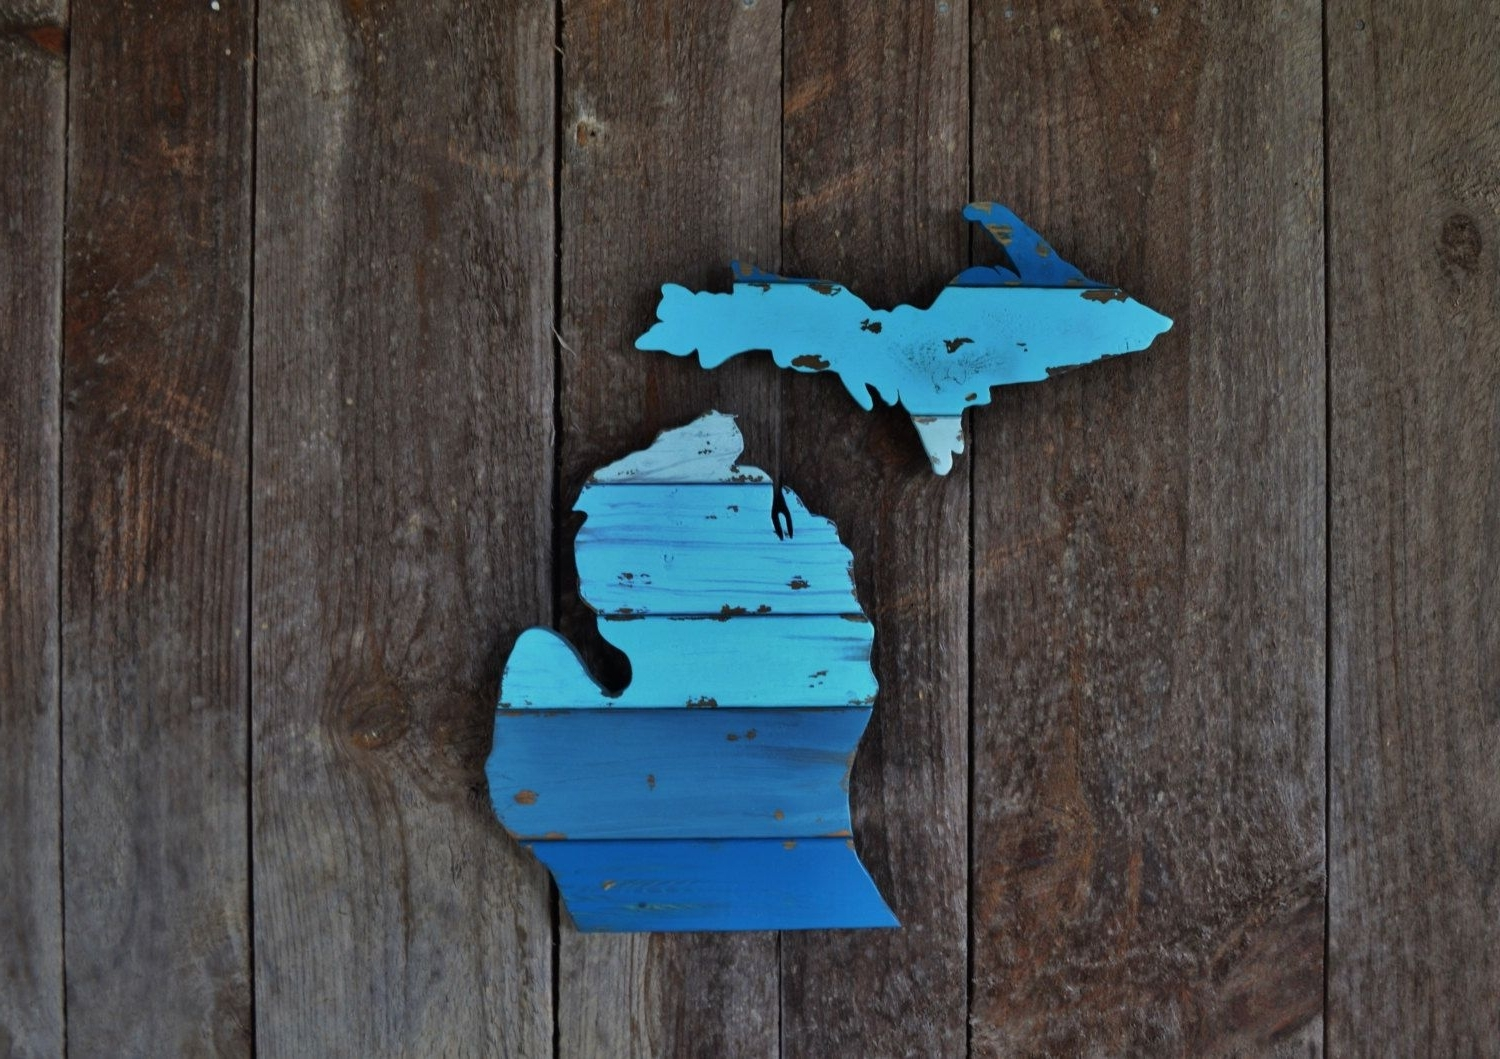 Current Hand Cut Wooden Michigan Wall Art: The Lelandthewoodnwall On Intended For Michigan Wall Art (View 1 of 15)